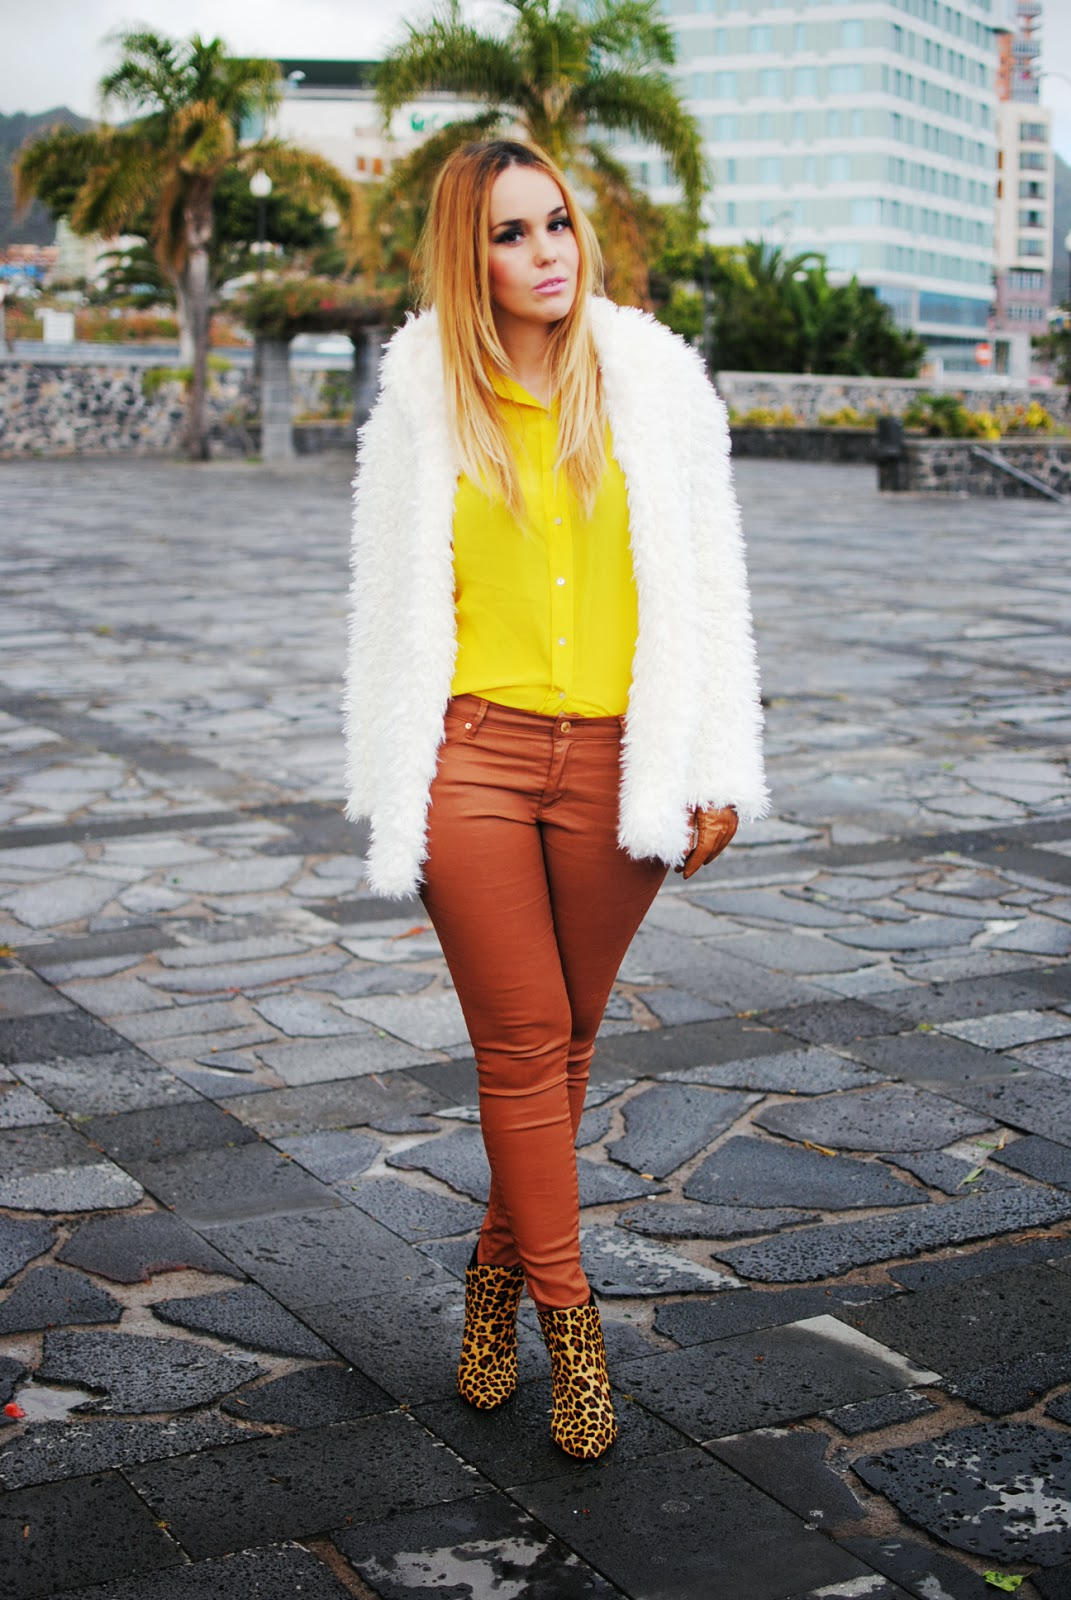 nery hdez, gloves, primark, rosewholesales, fur coat, teddy coat, yellow canary, blonde girl